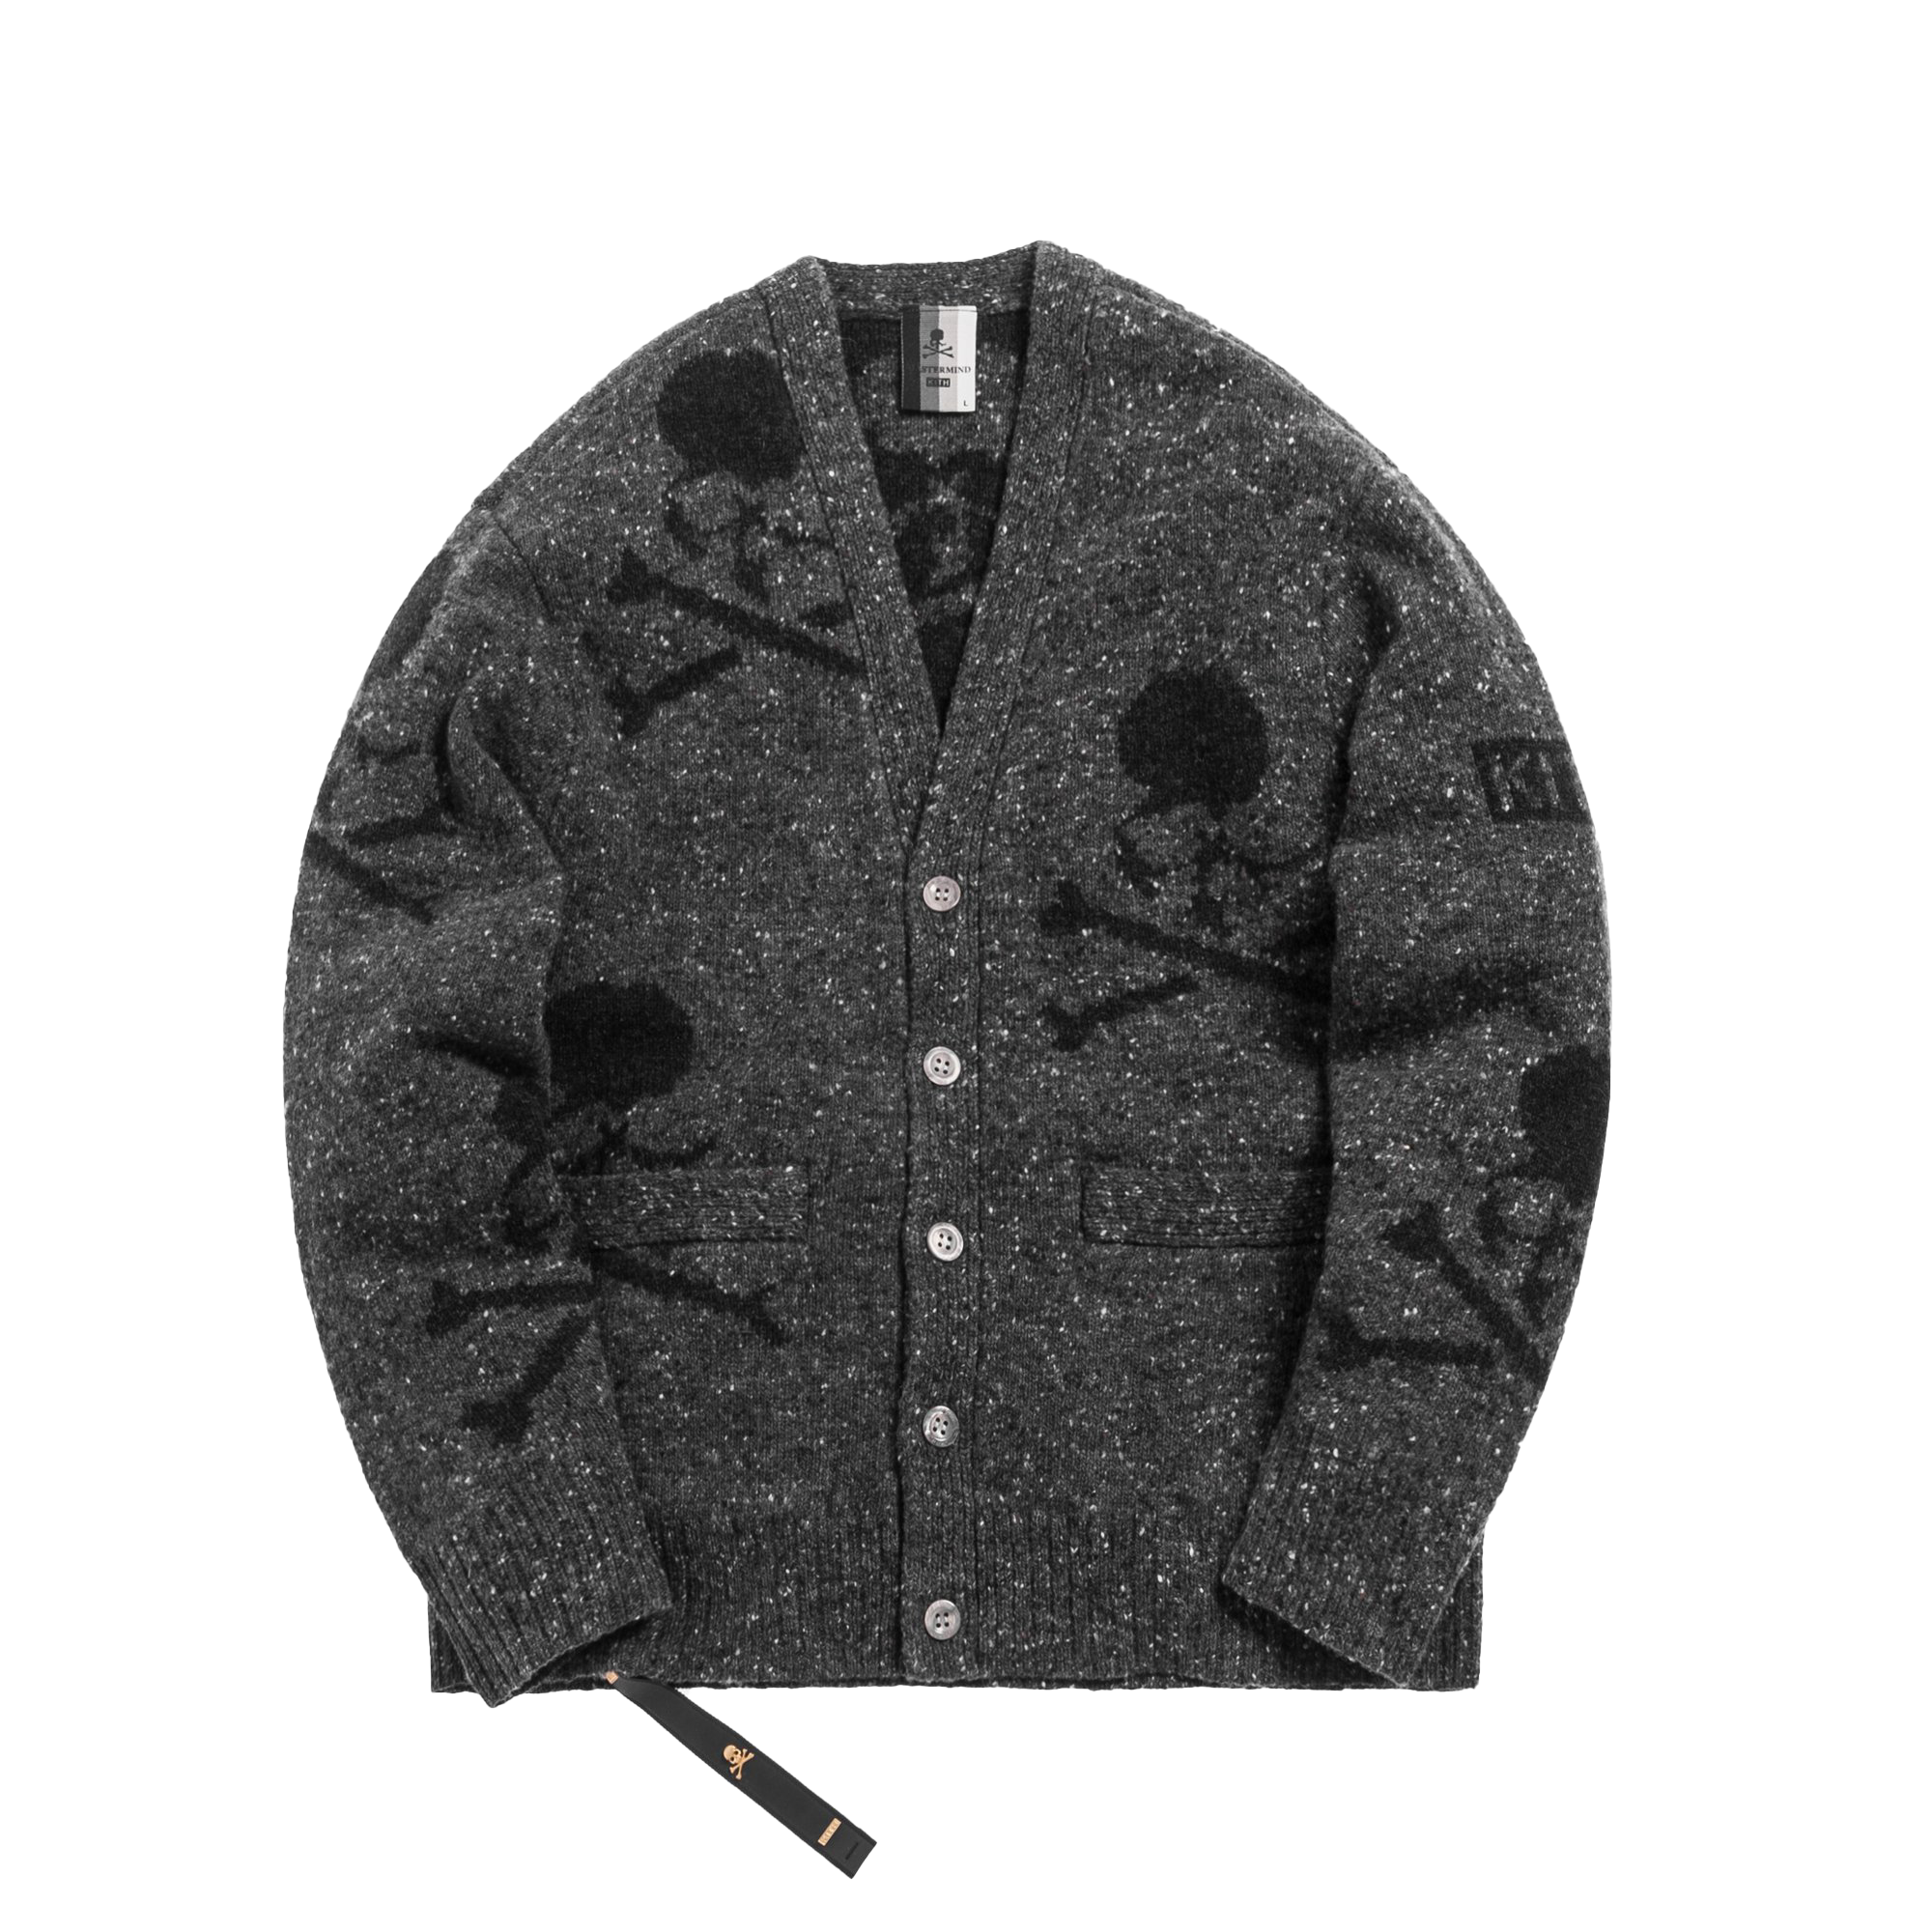 Kith x mastermind WORLD Knit Cardigan Black